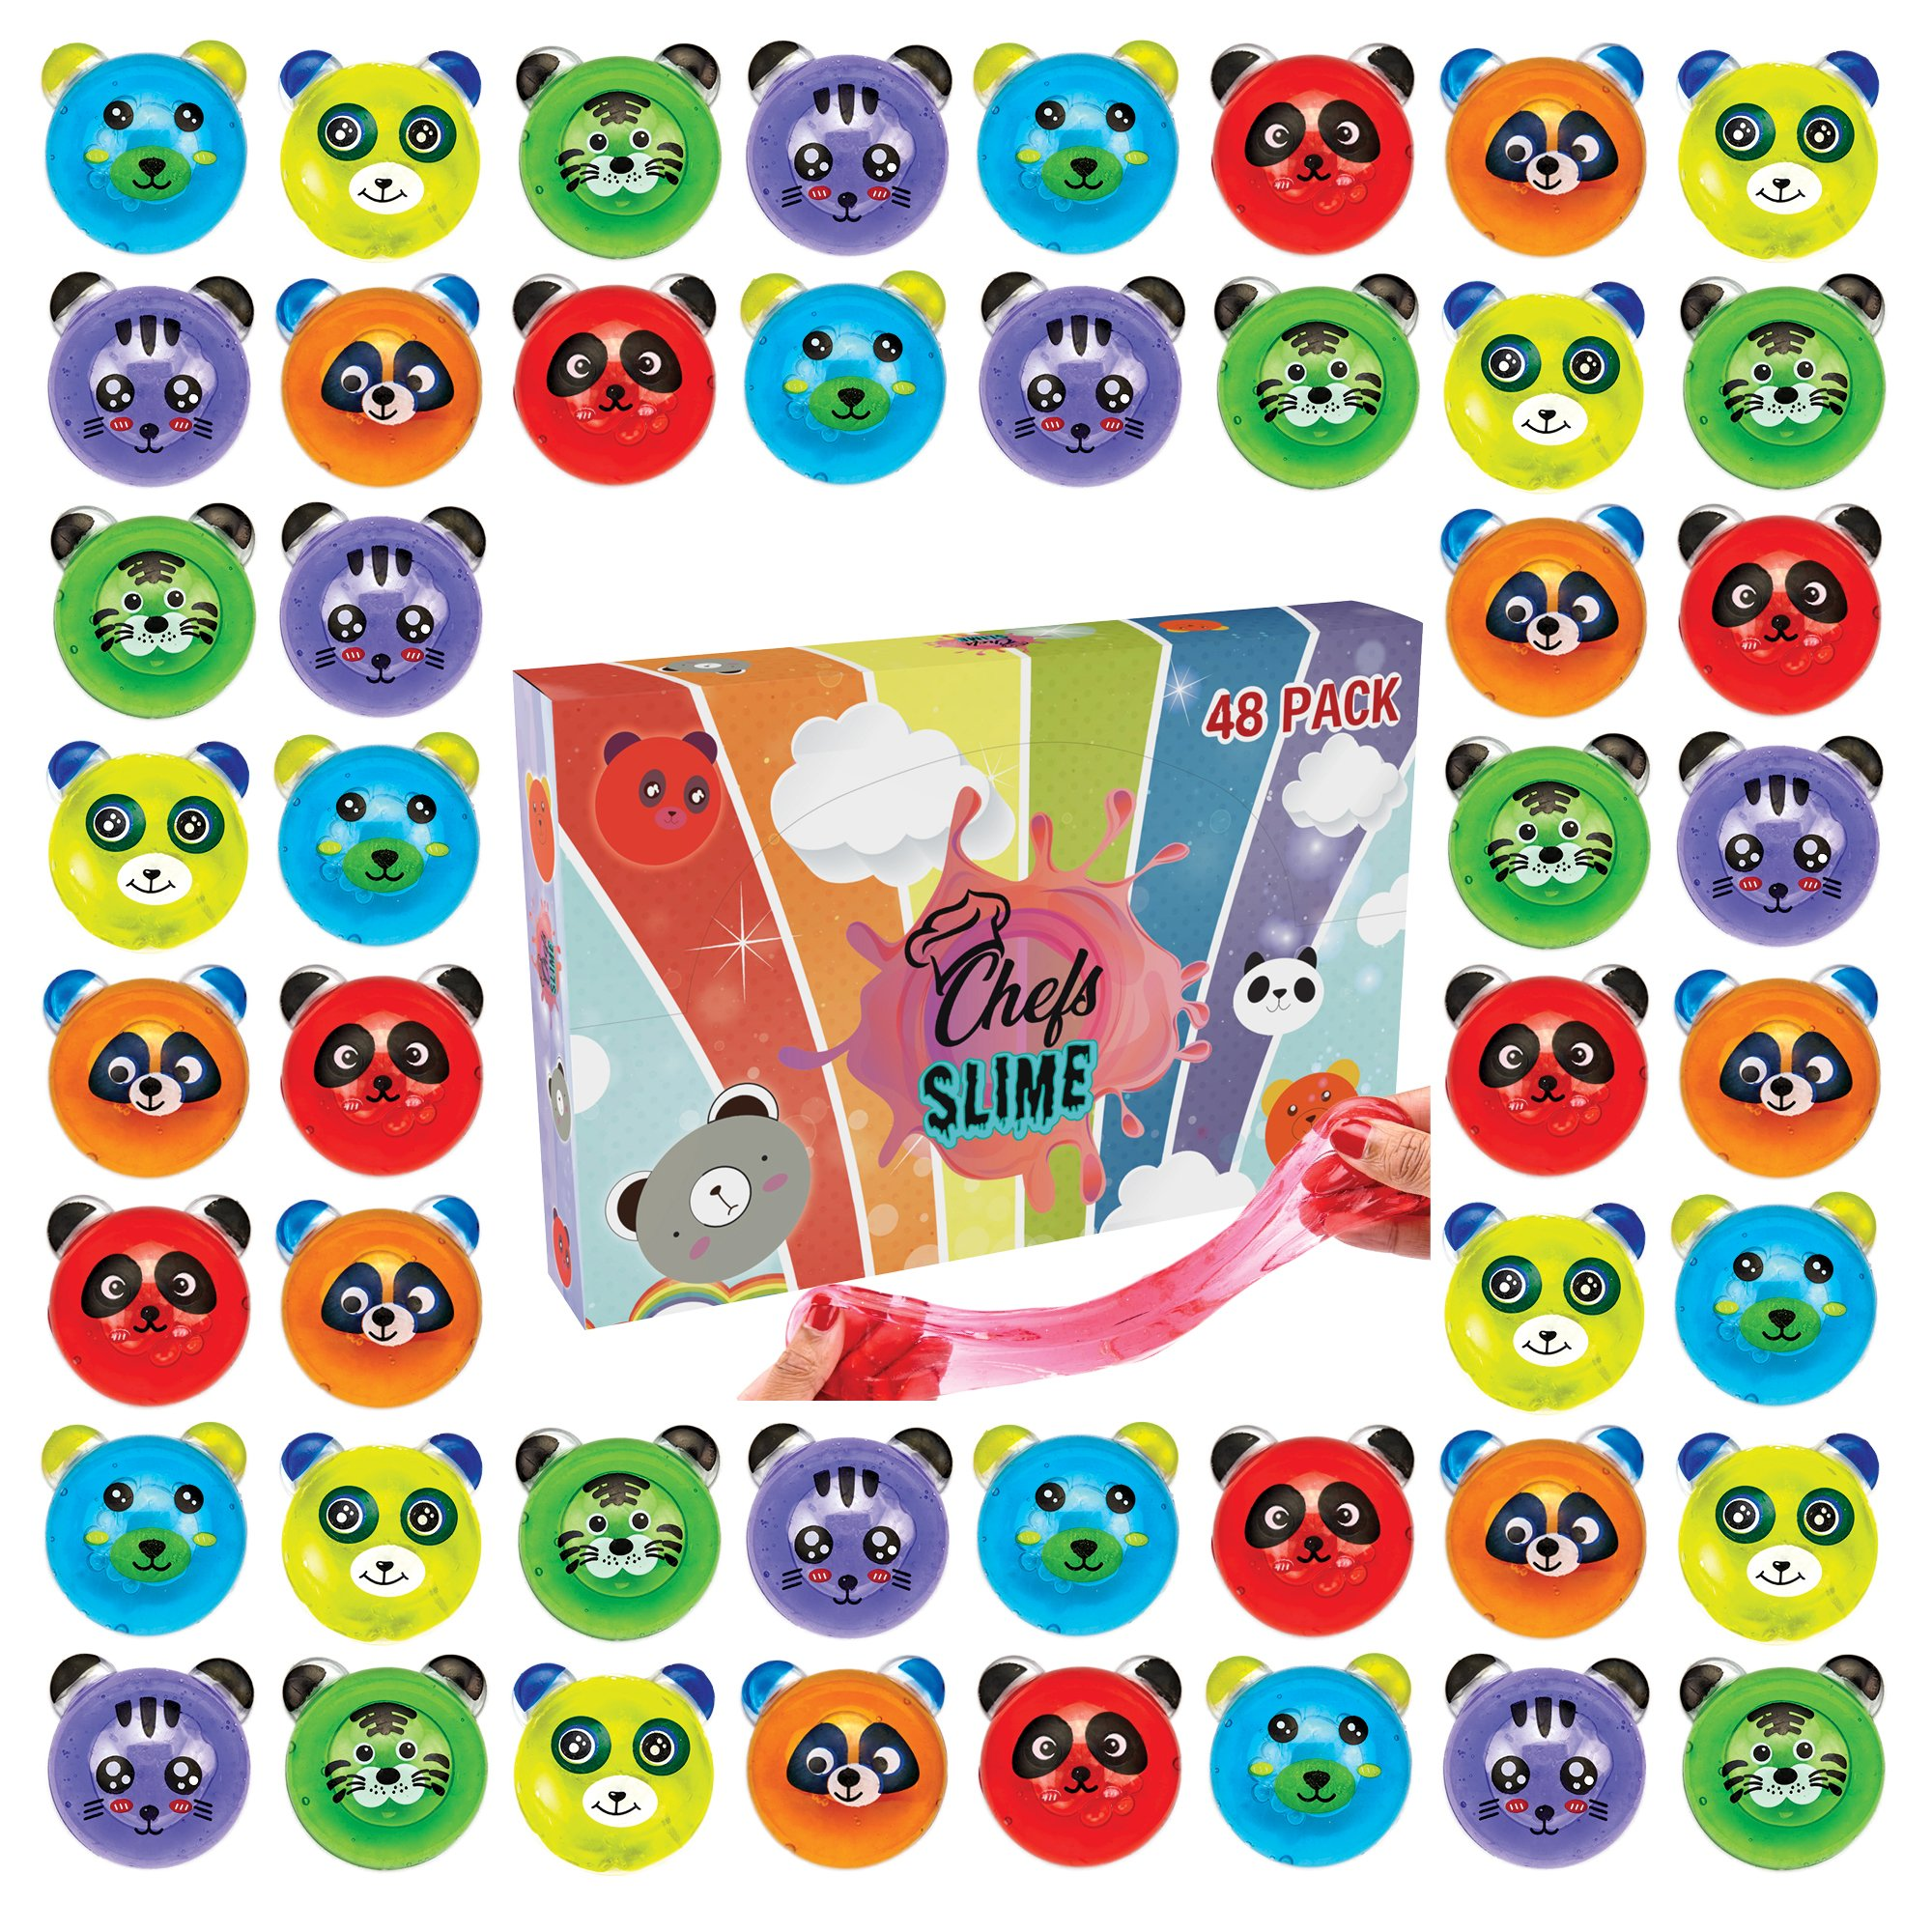 ChefSlime - New: | 48 Pack | Fluffy & Stretchy Animal Mud Slime Putty | Non Sticky | Stress Relief, Super Soft & Squishy Sludge Toy for Kids and Adults | Jumbo Pack by ChefSlime